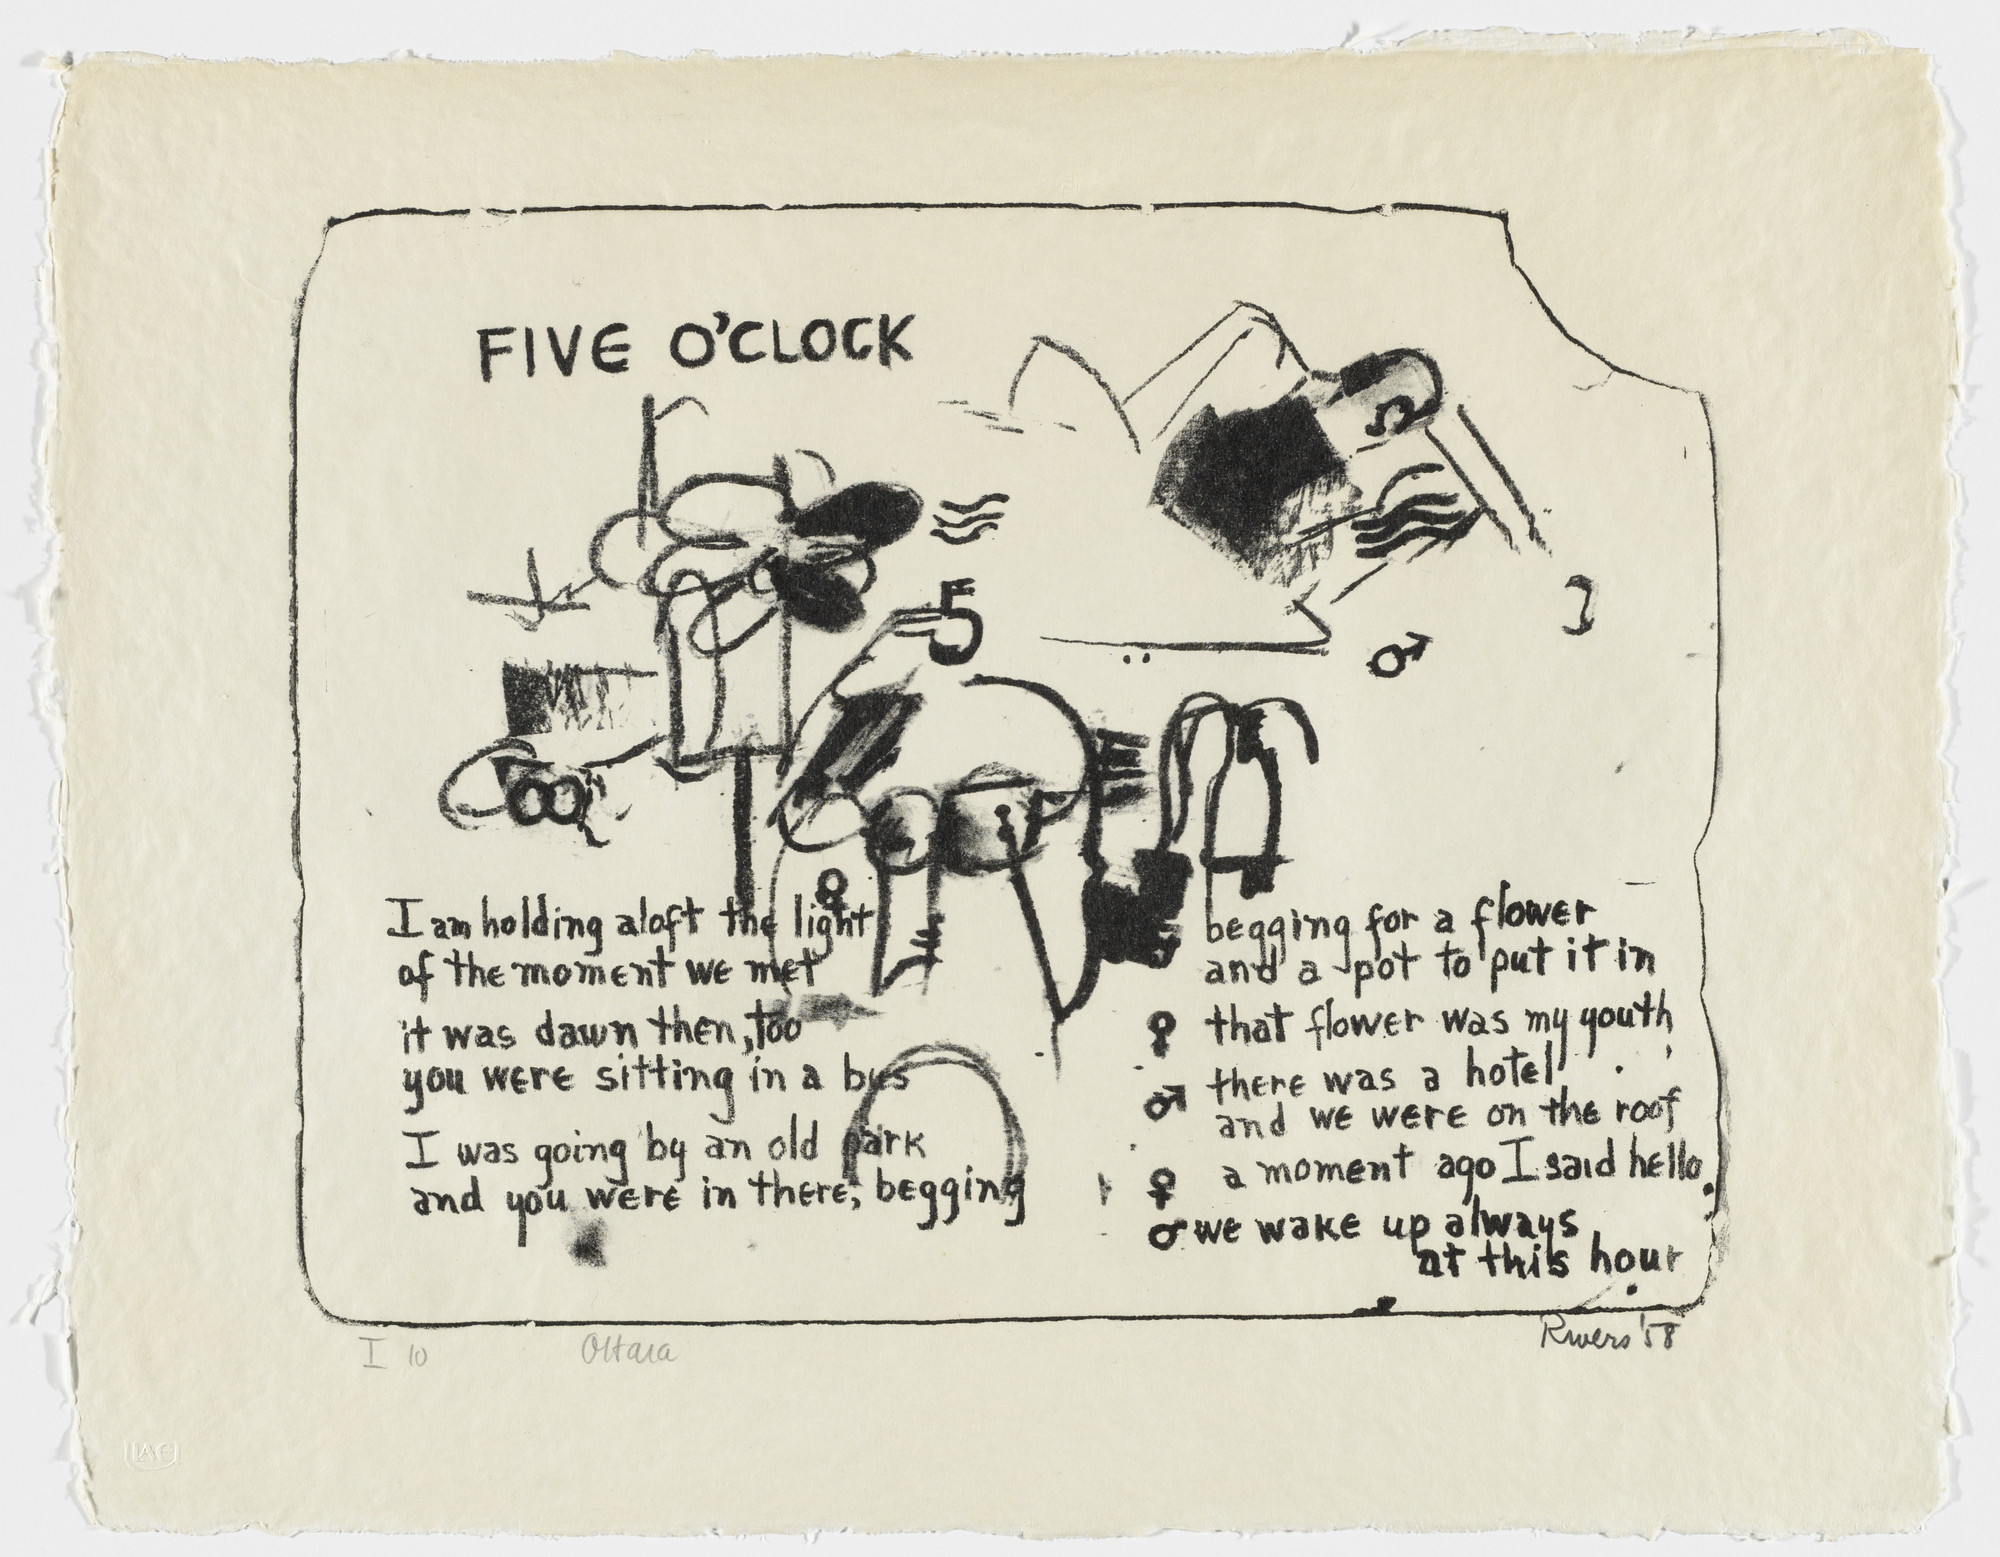 Larry Rivers. Five O'Clock from Stones. 1958, published 1960